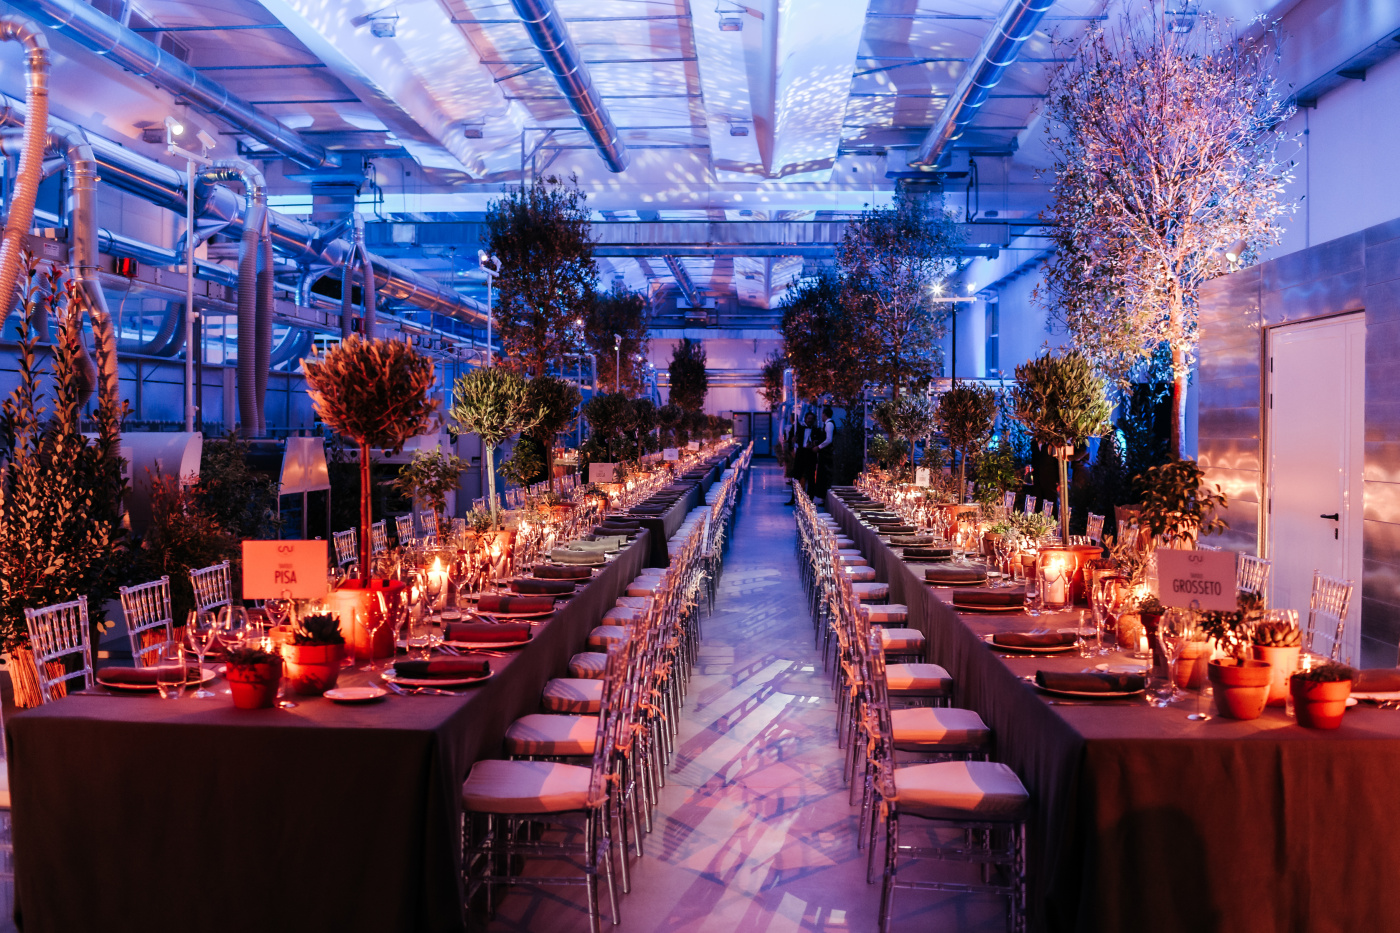 corporate event with long tables and plants as decor